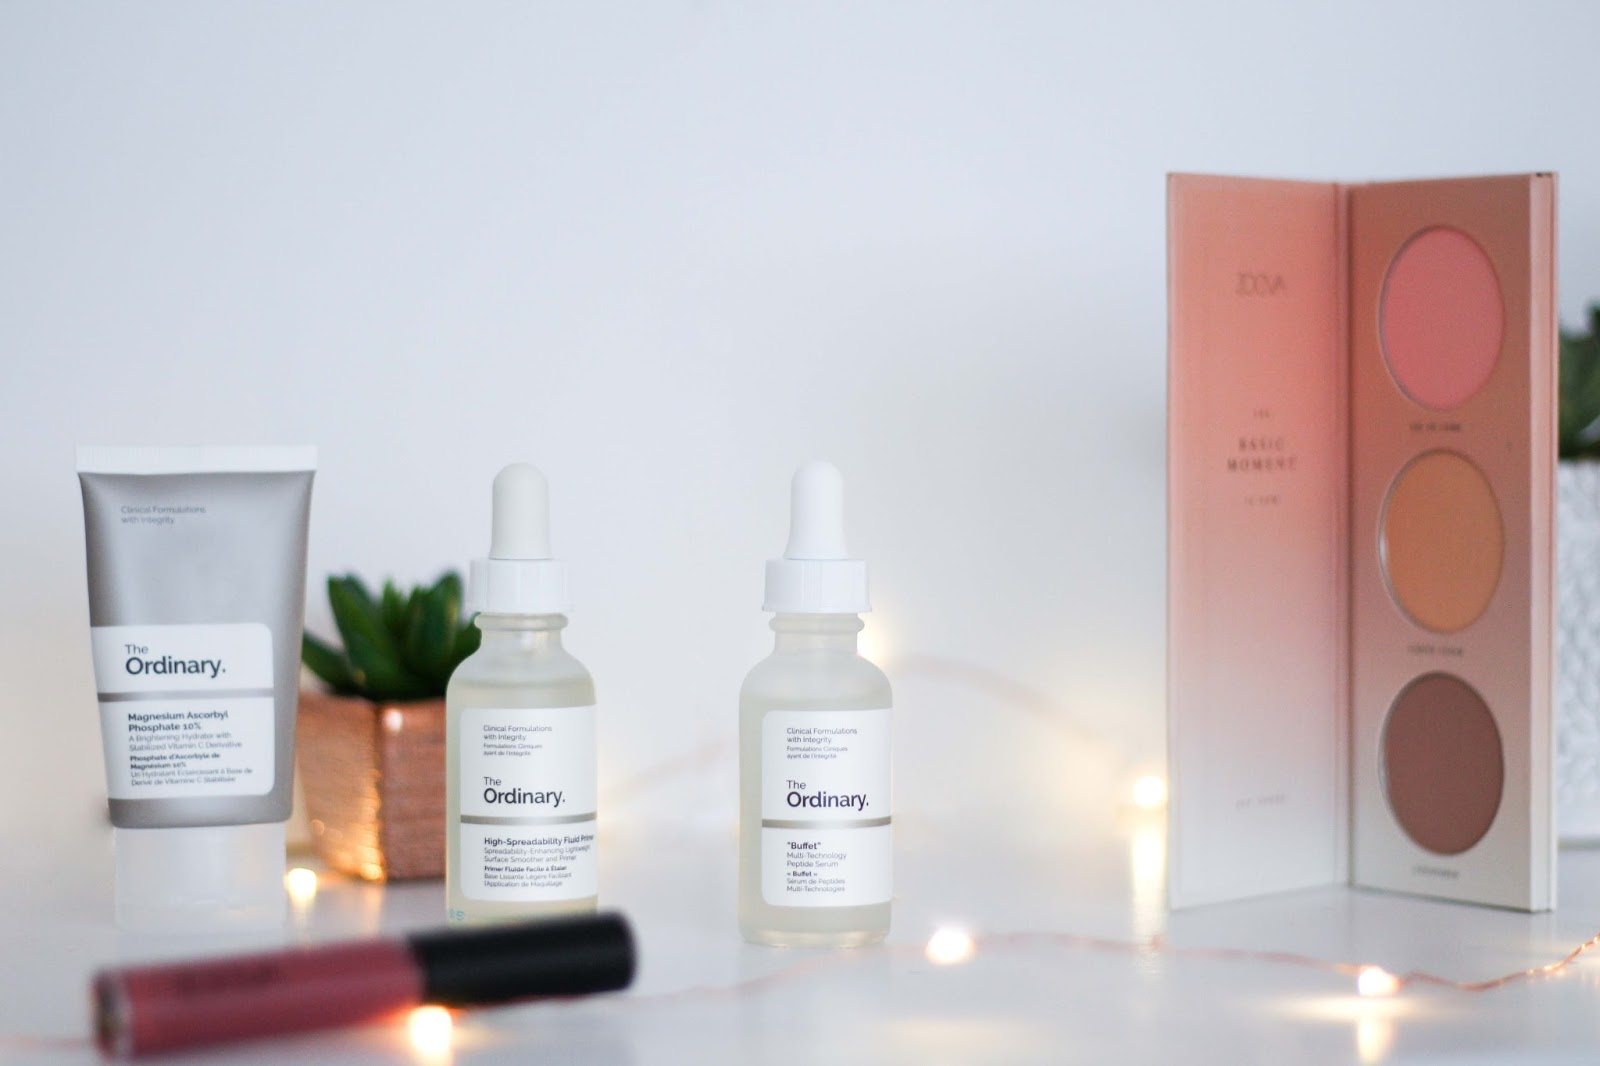 A Cult Beauty Haul - The Ordinary Skin Care